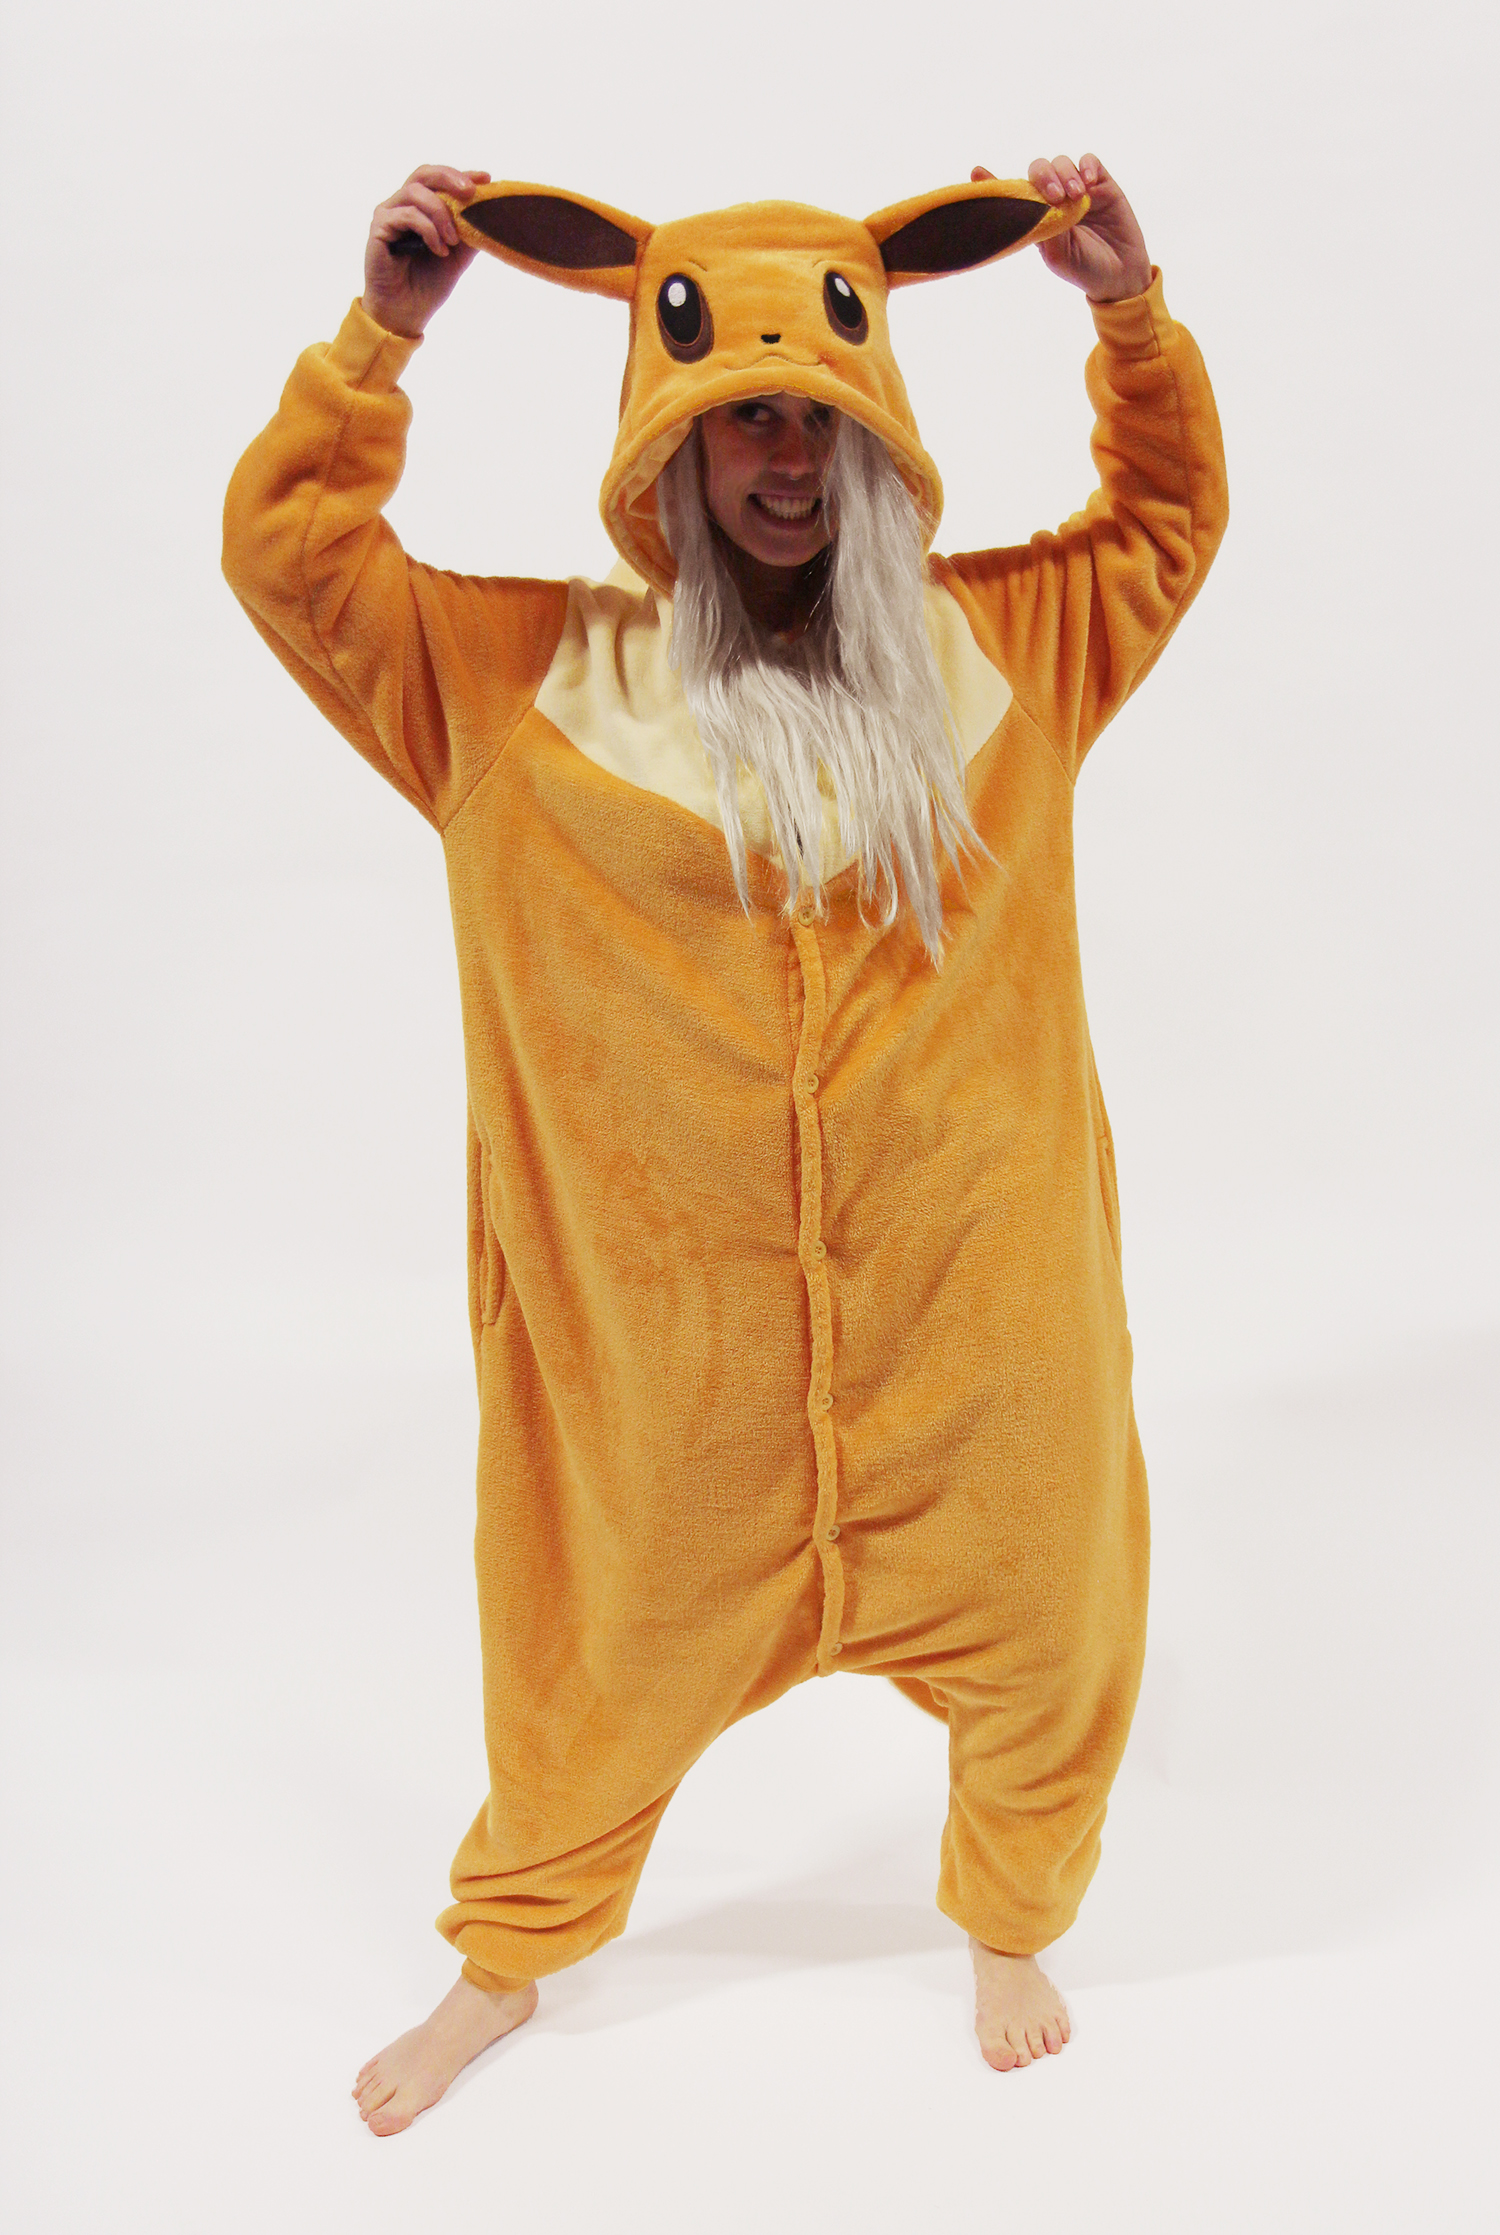 a1447293ee69 Buy your Eevee Pokémon onesie now! - PartyinyourAnimal.com